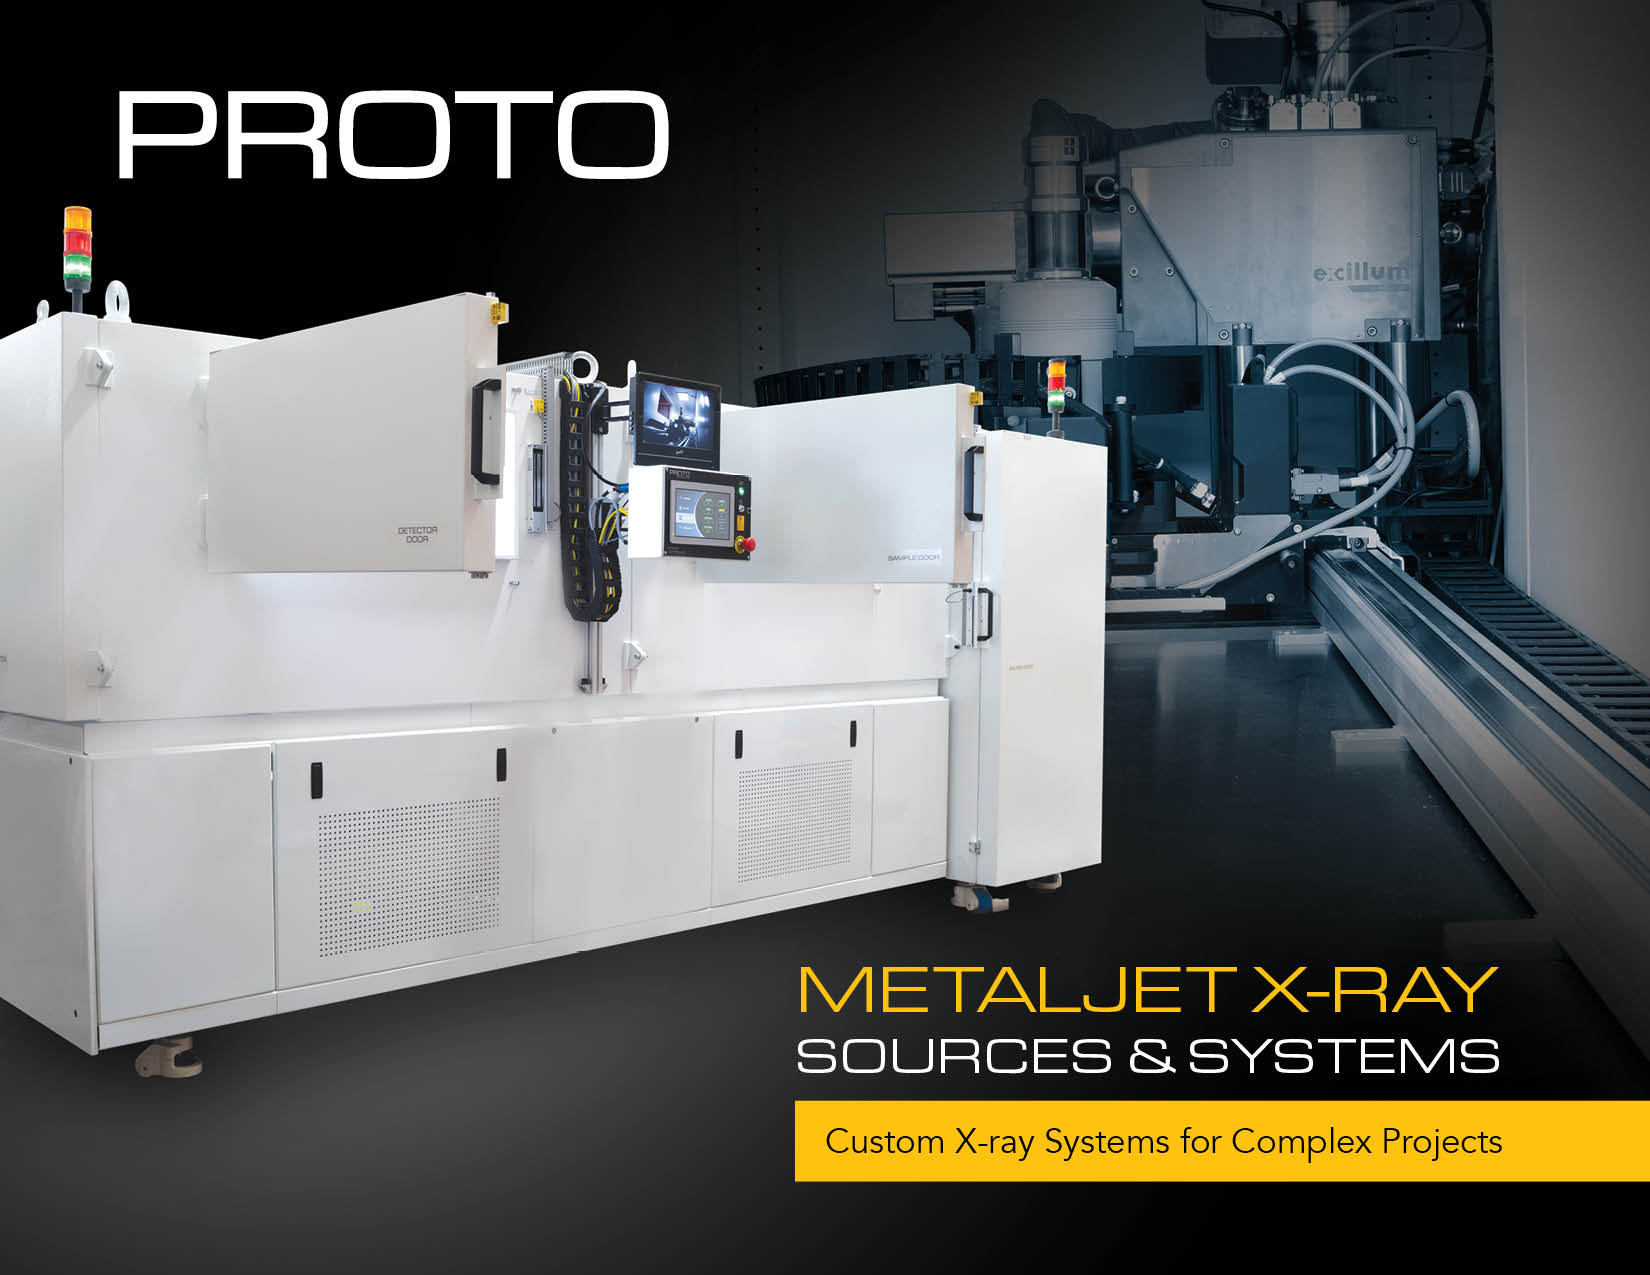 metaljet brochure